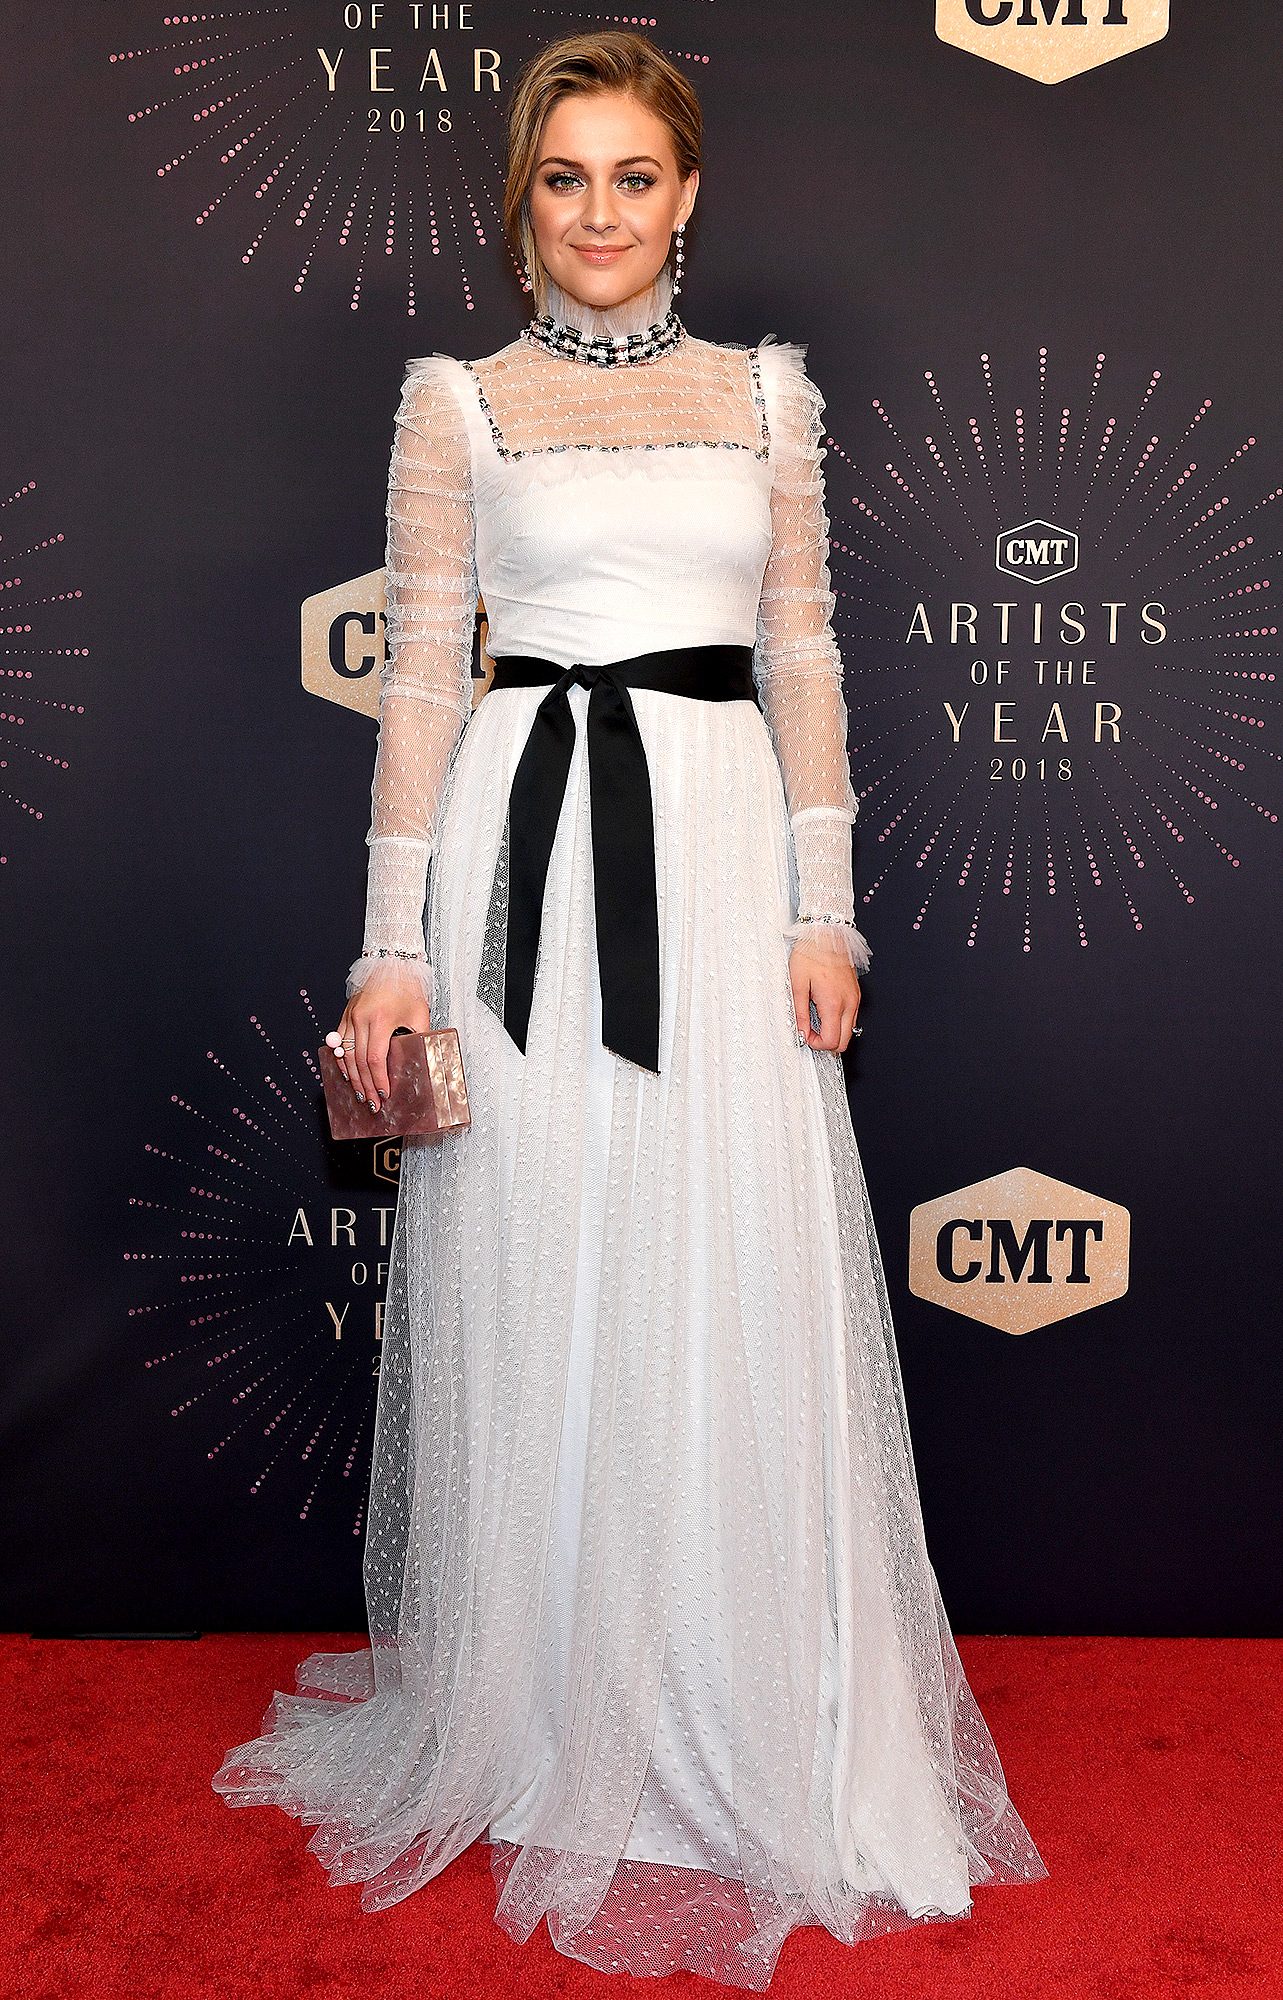 2018 CMT Artists of the Year